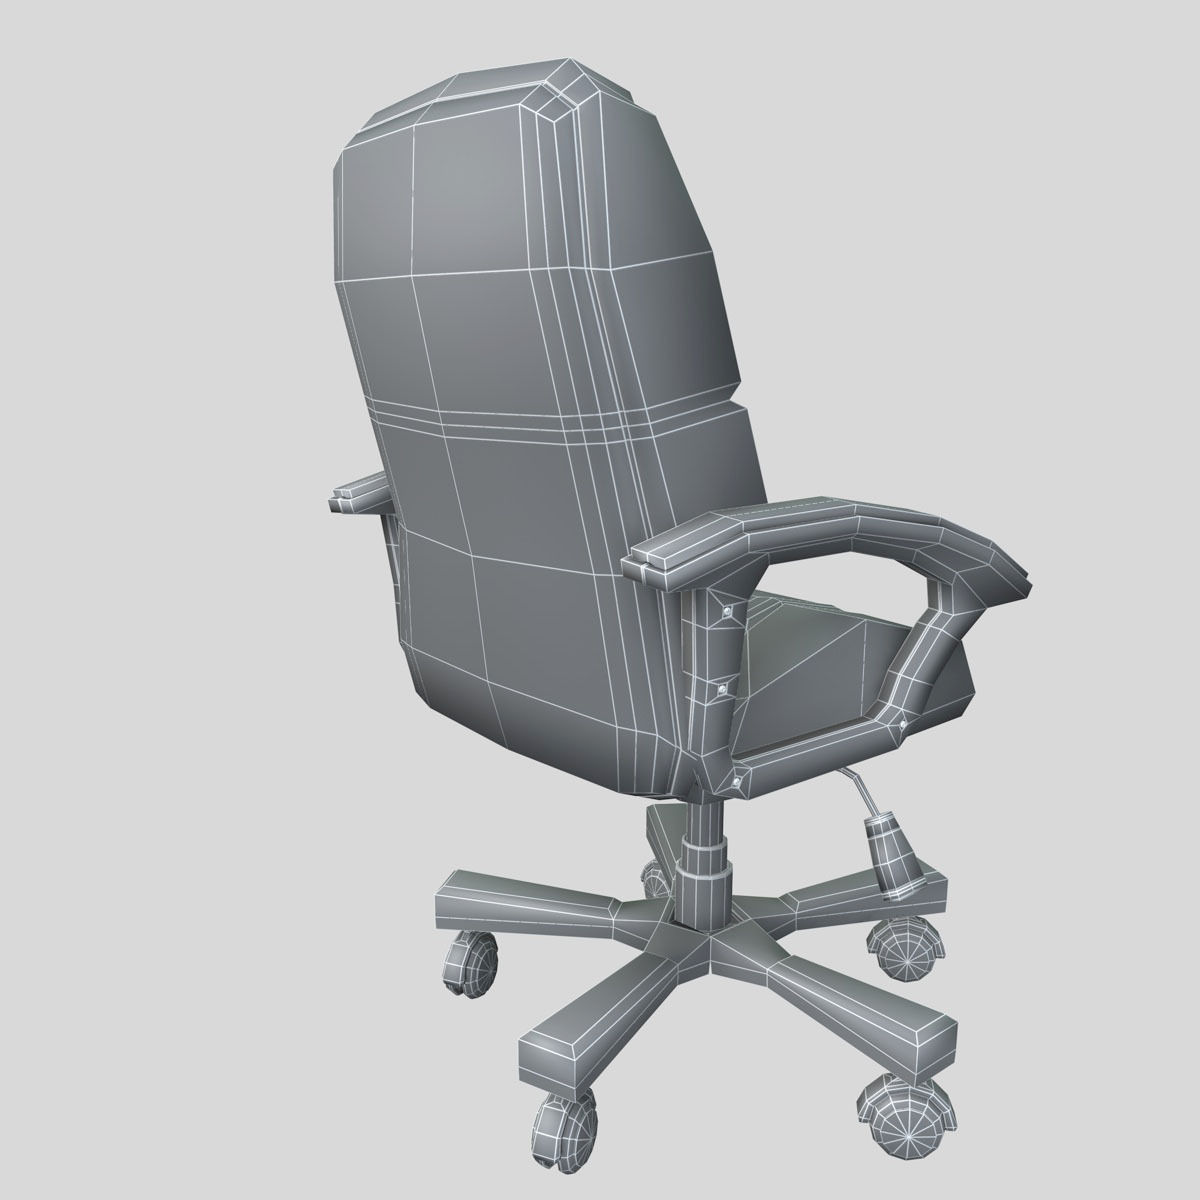 chair on wheels hanging ebay uk office 3d model obj 3ds fbx c4d cgtrader